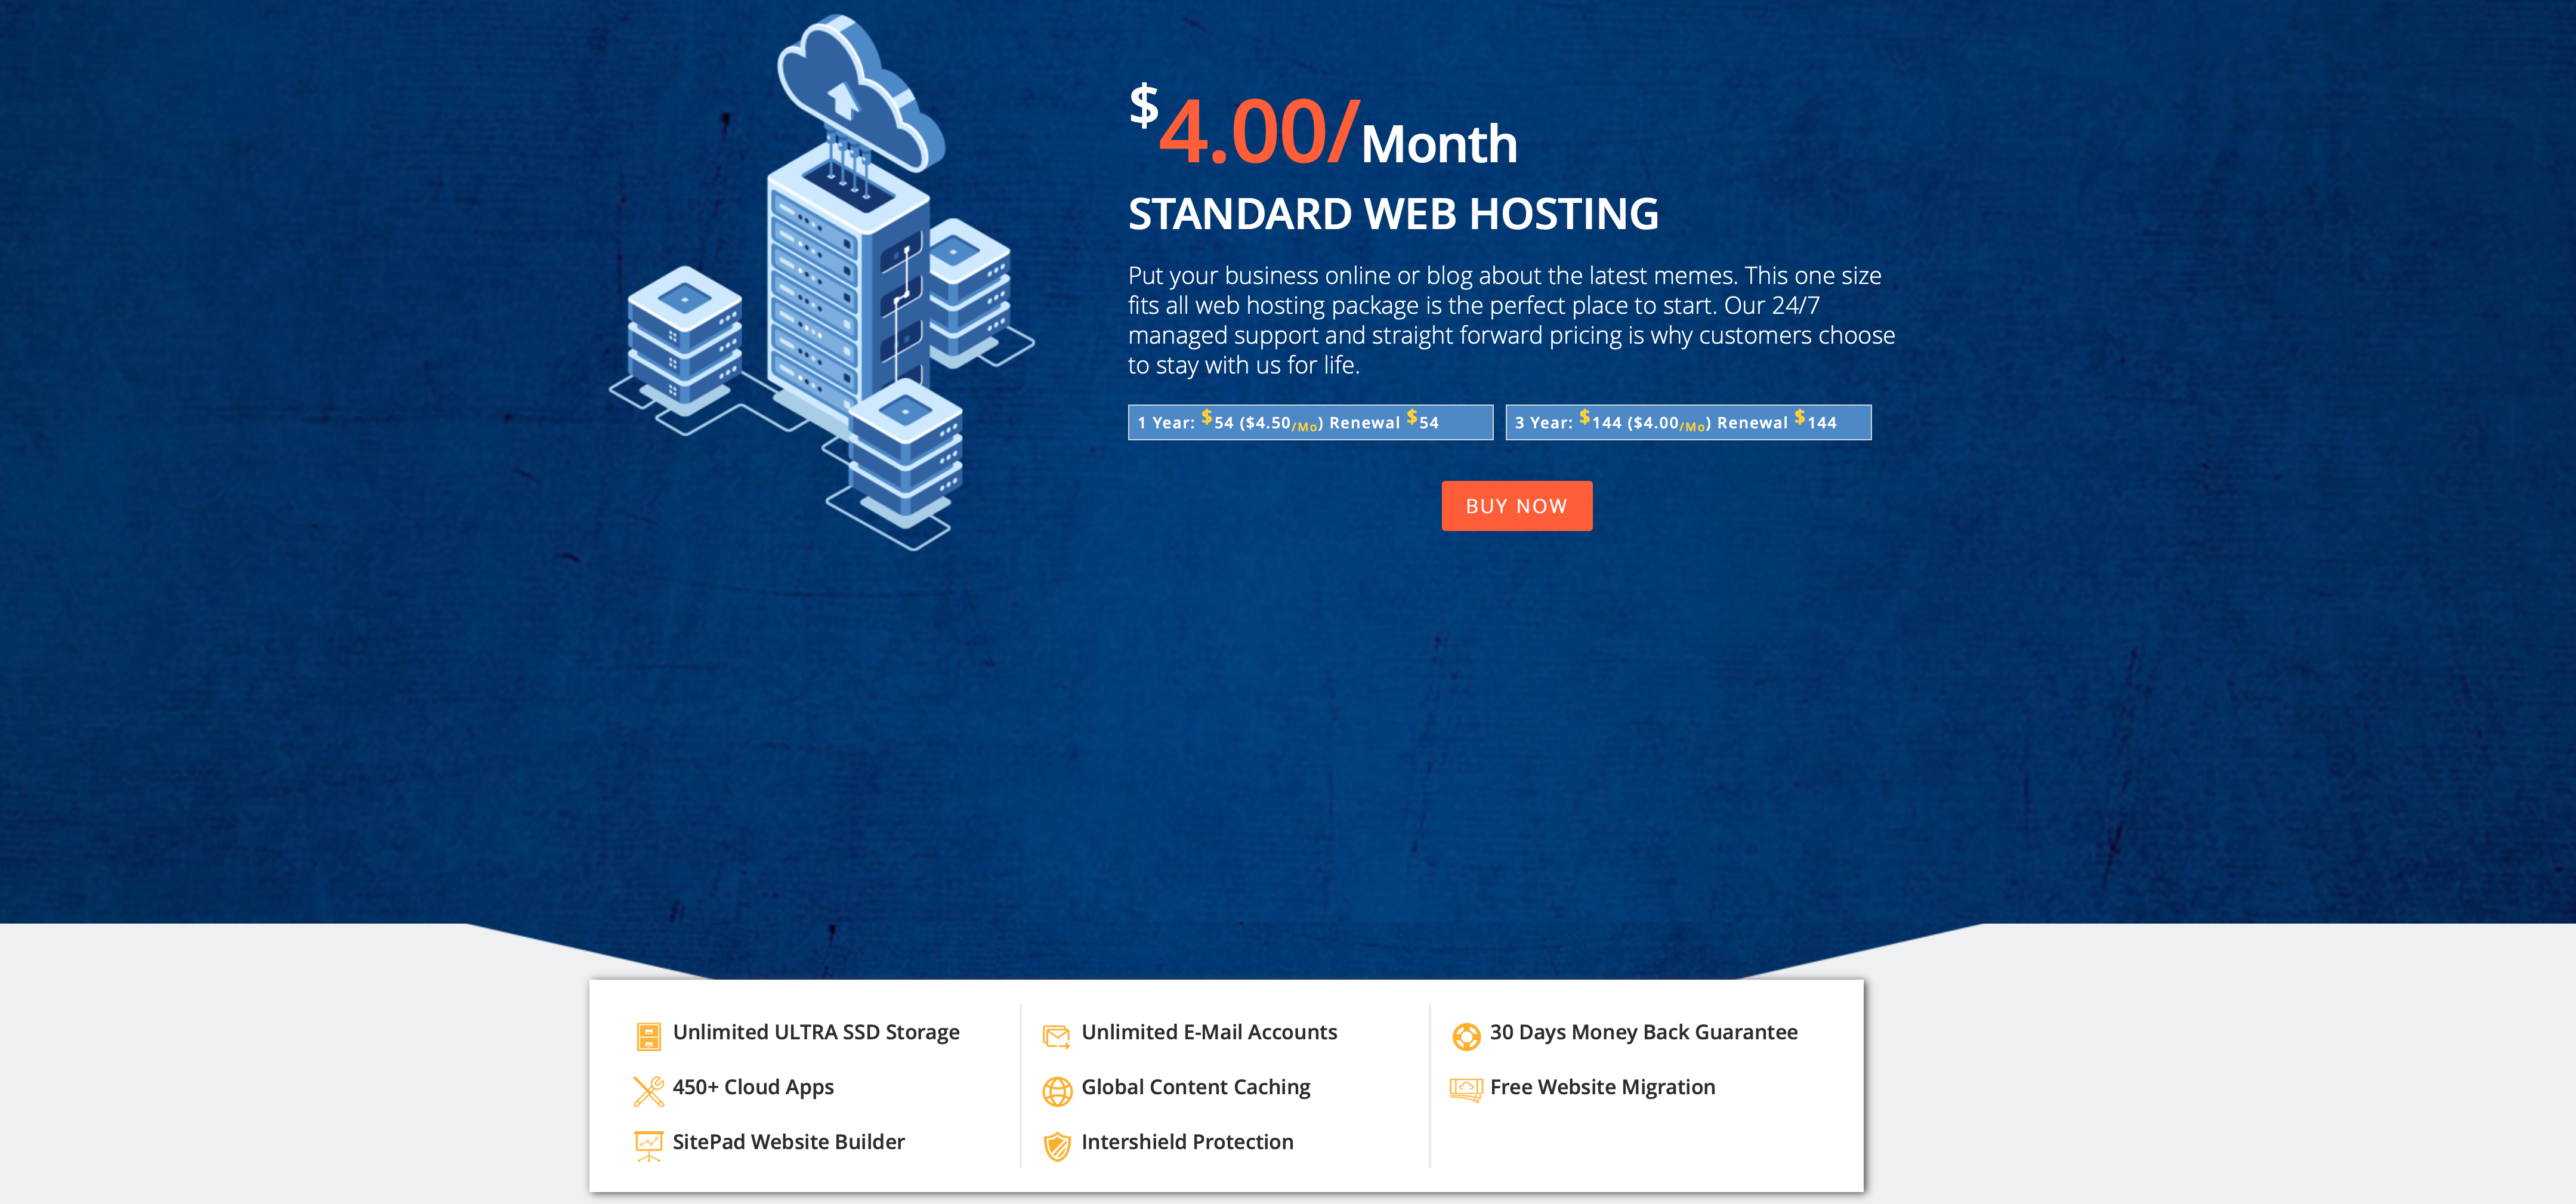 interserver-hosting-plans-and-pricing